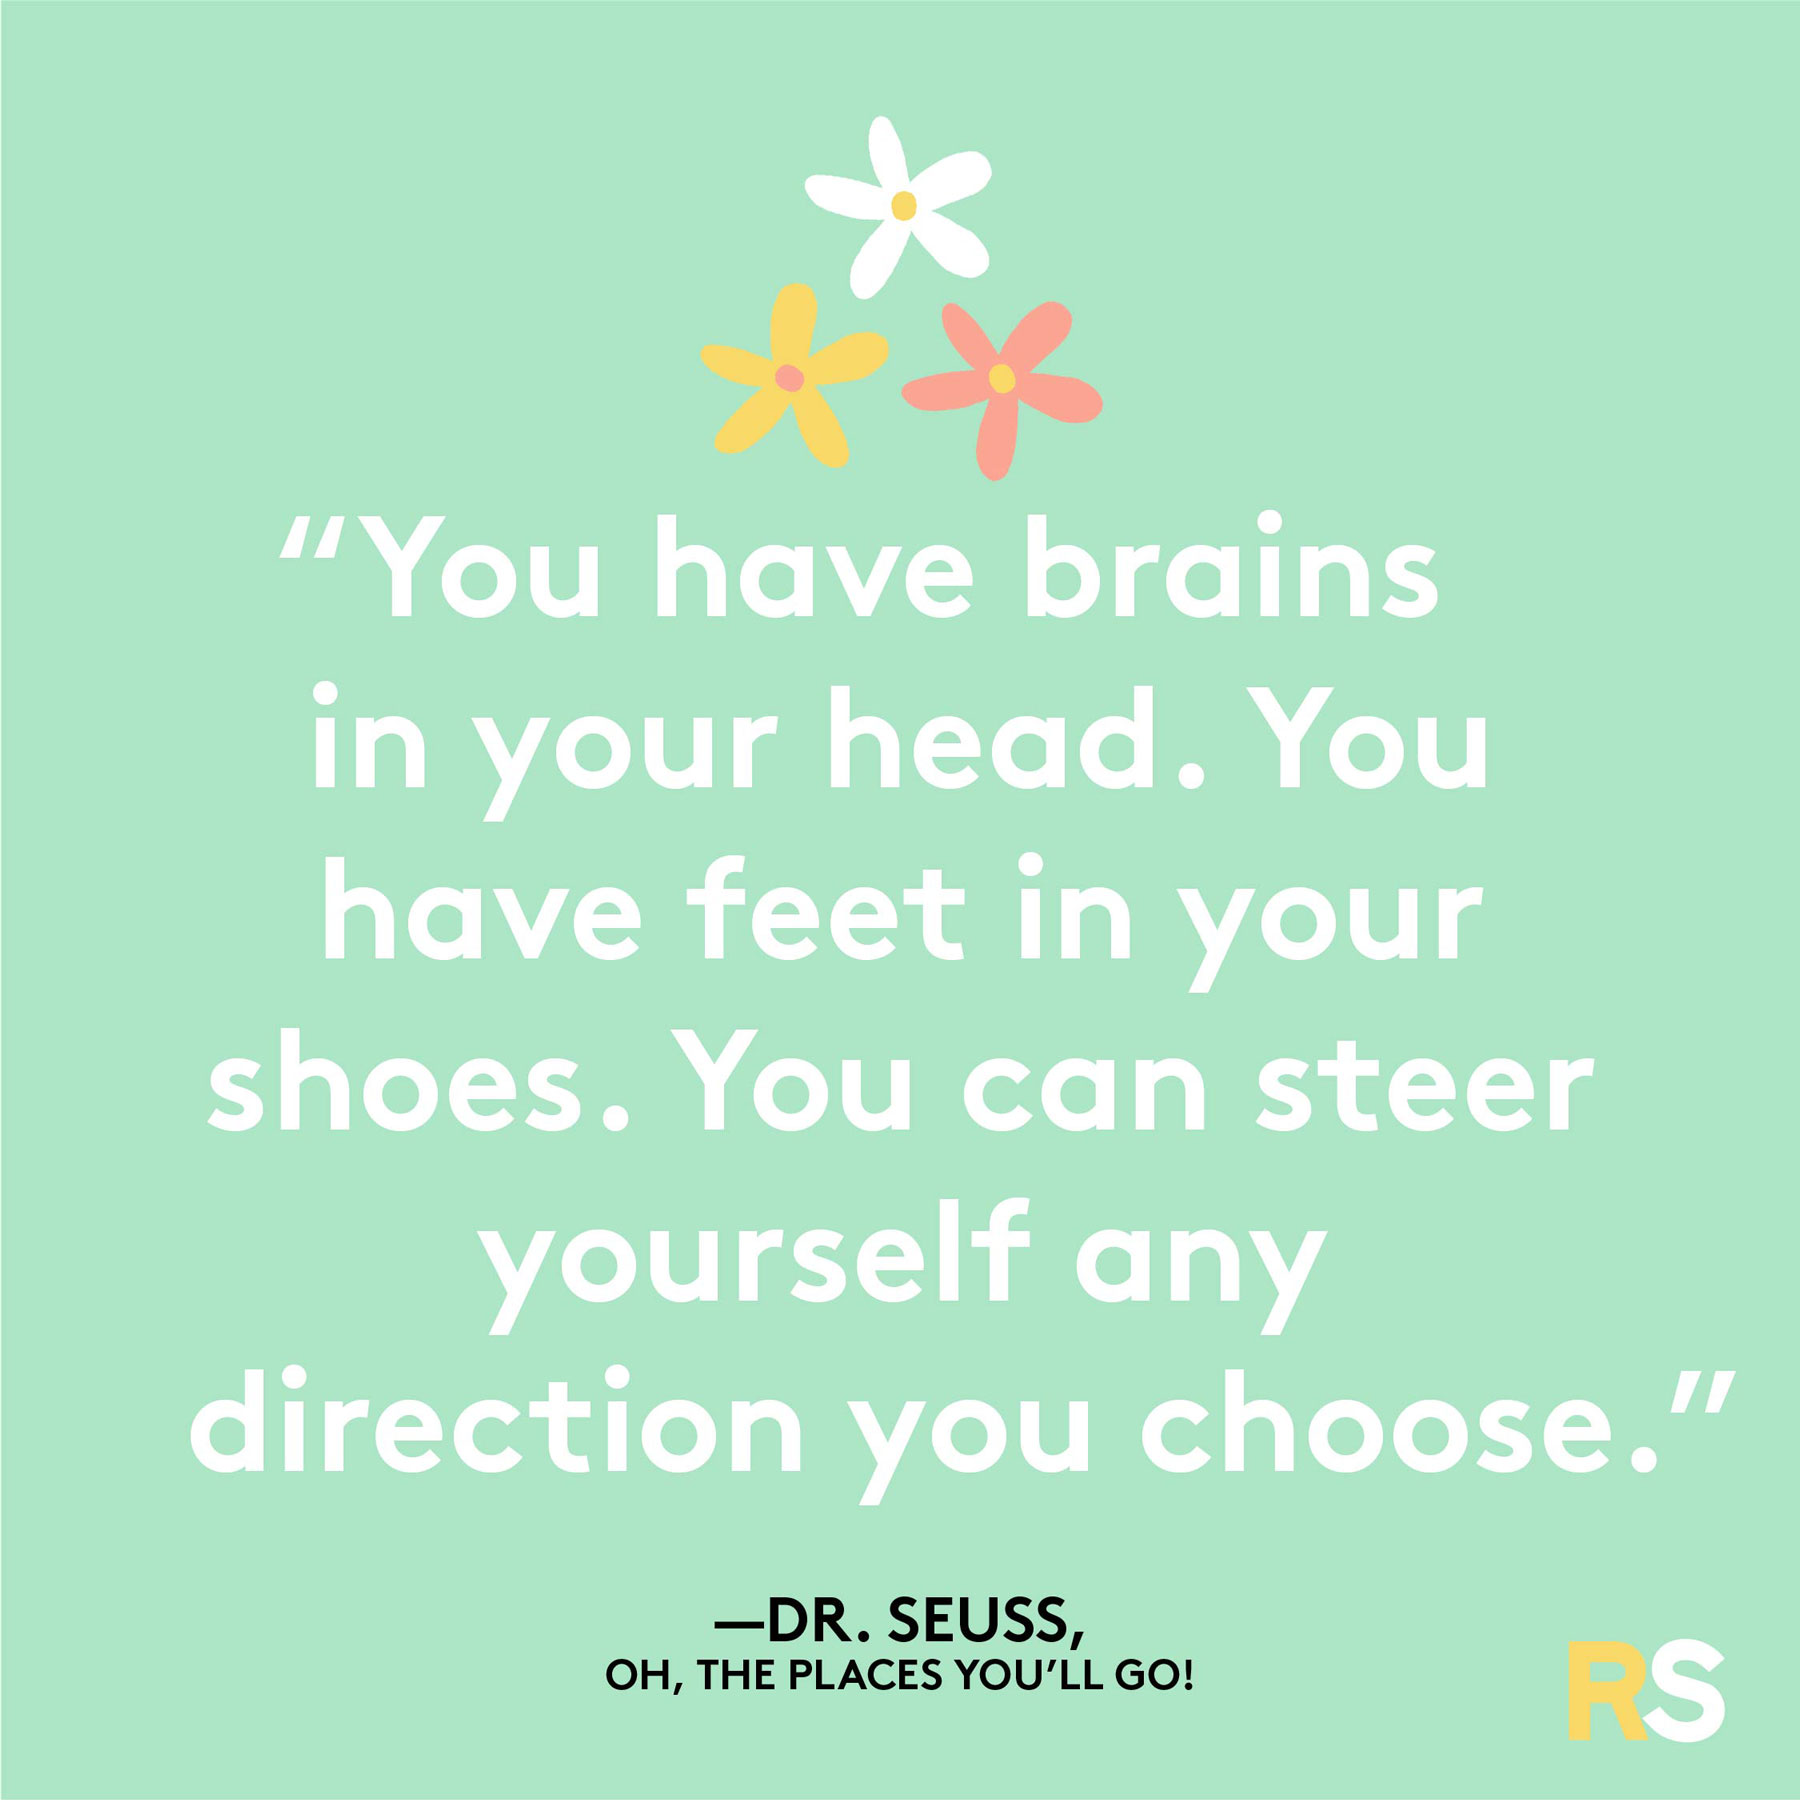 Positive motivating quotes, captions, messages – Dr. Seuss, Oh the Places You'll Go quote